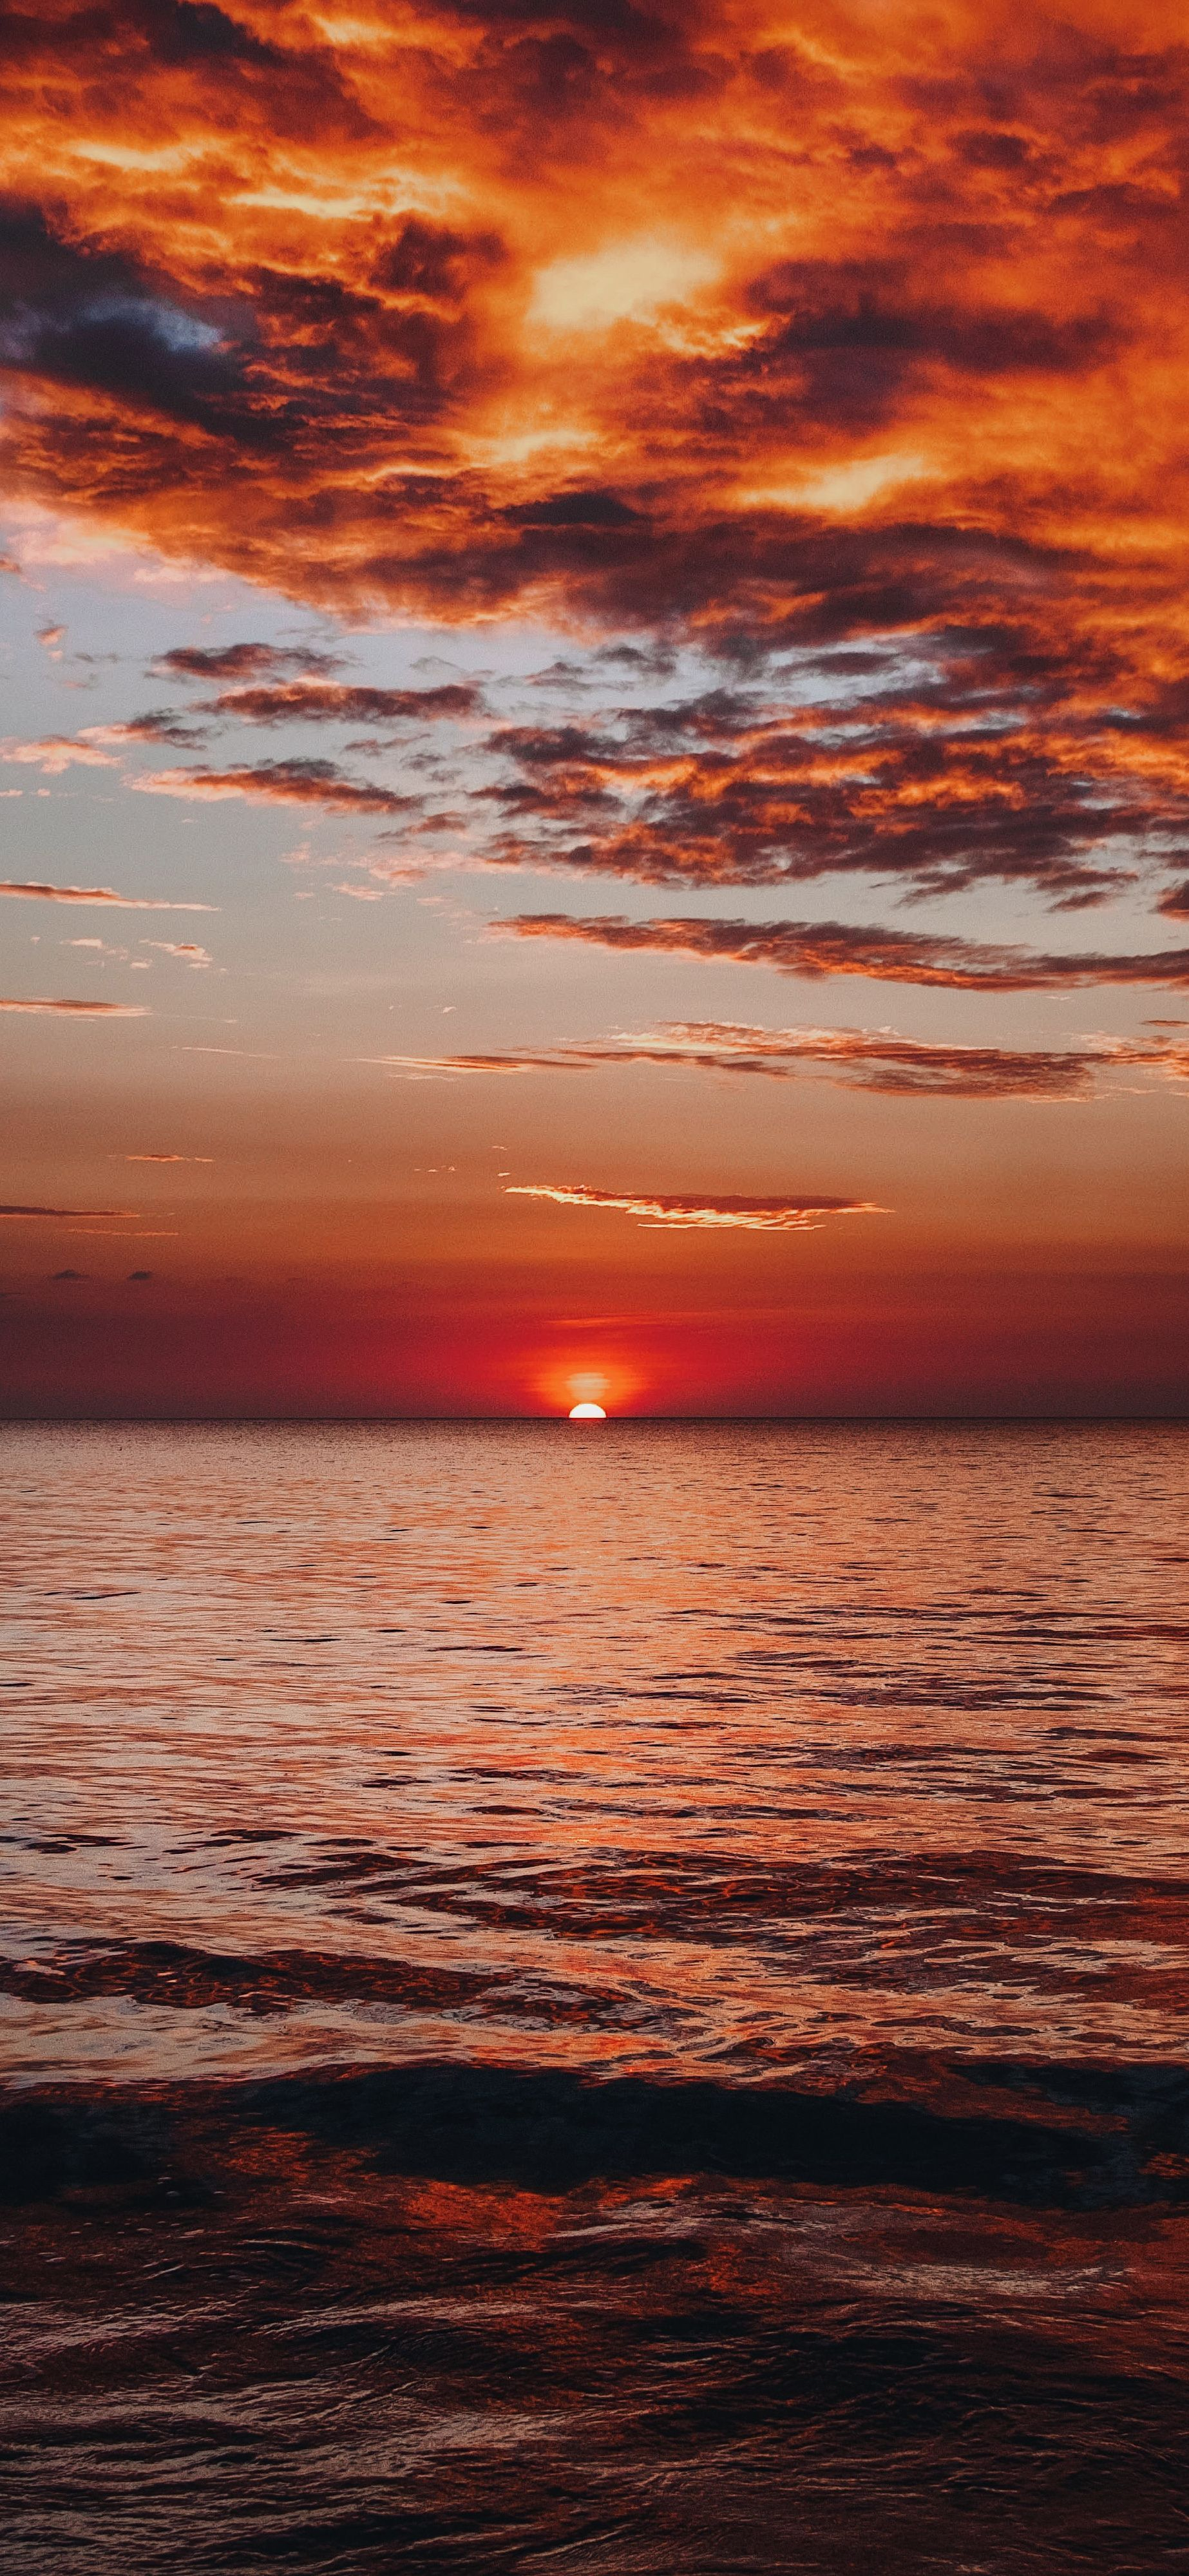 Pin By Laurissa Azar On 海 In 2020 Sunset Wallpaper Ocean Wallpaper Pictures To Paint